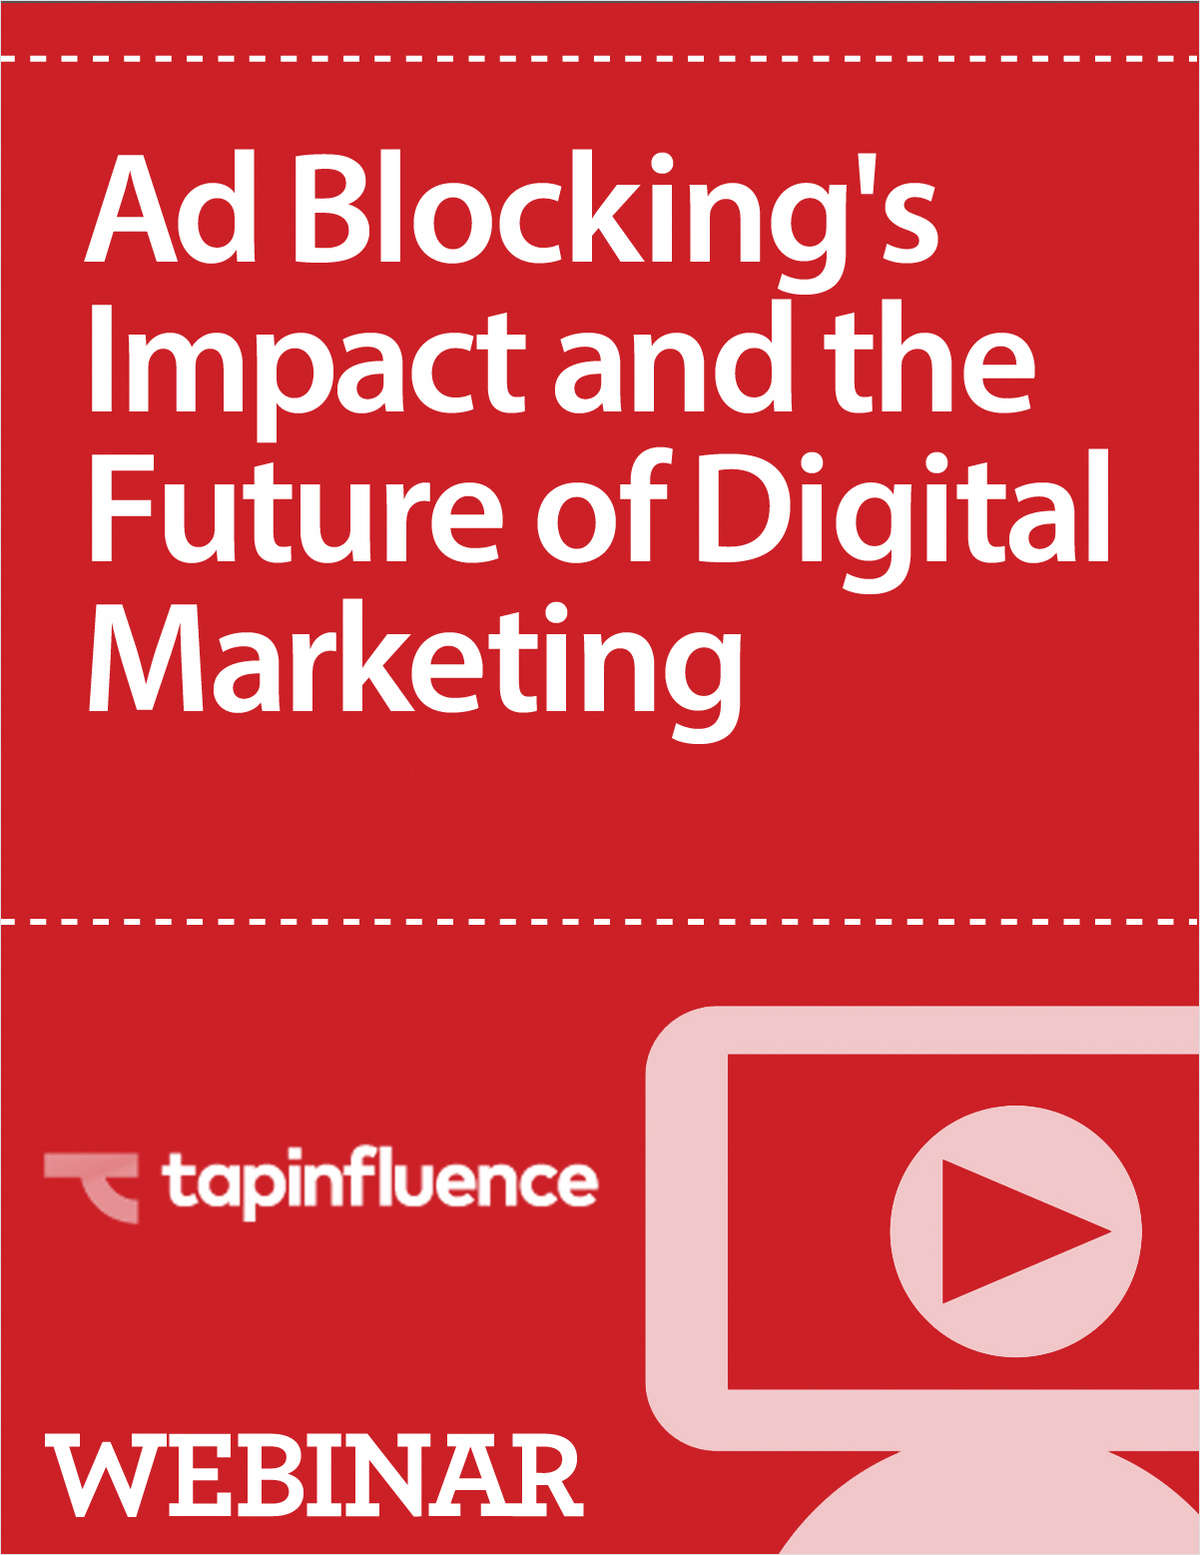 Ad Blocking's Impact and the Future of Digital Marketing